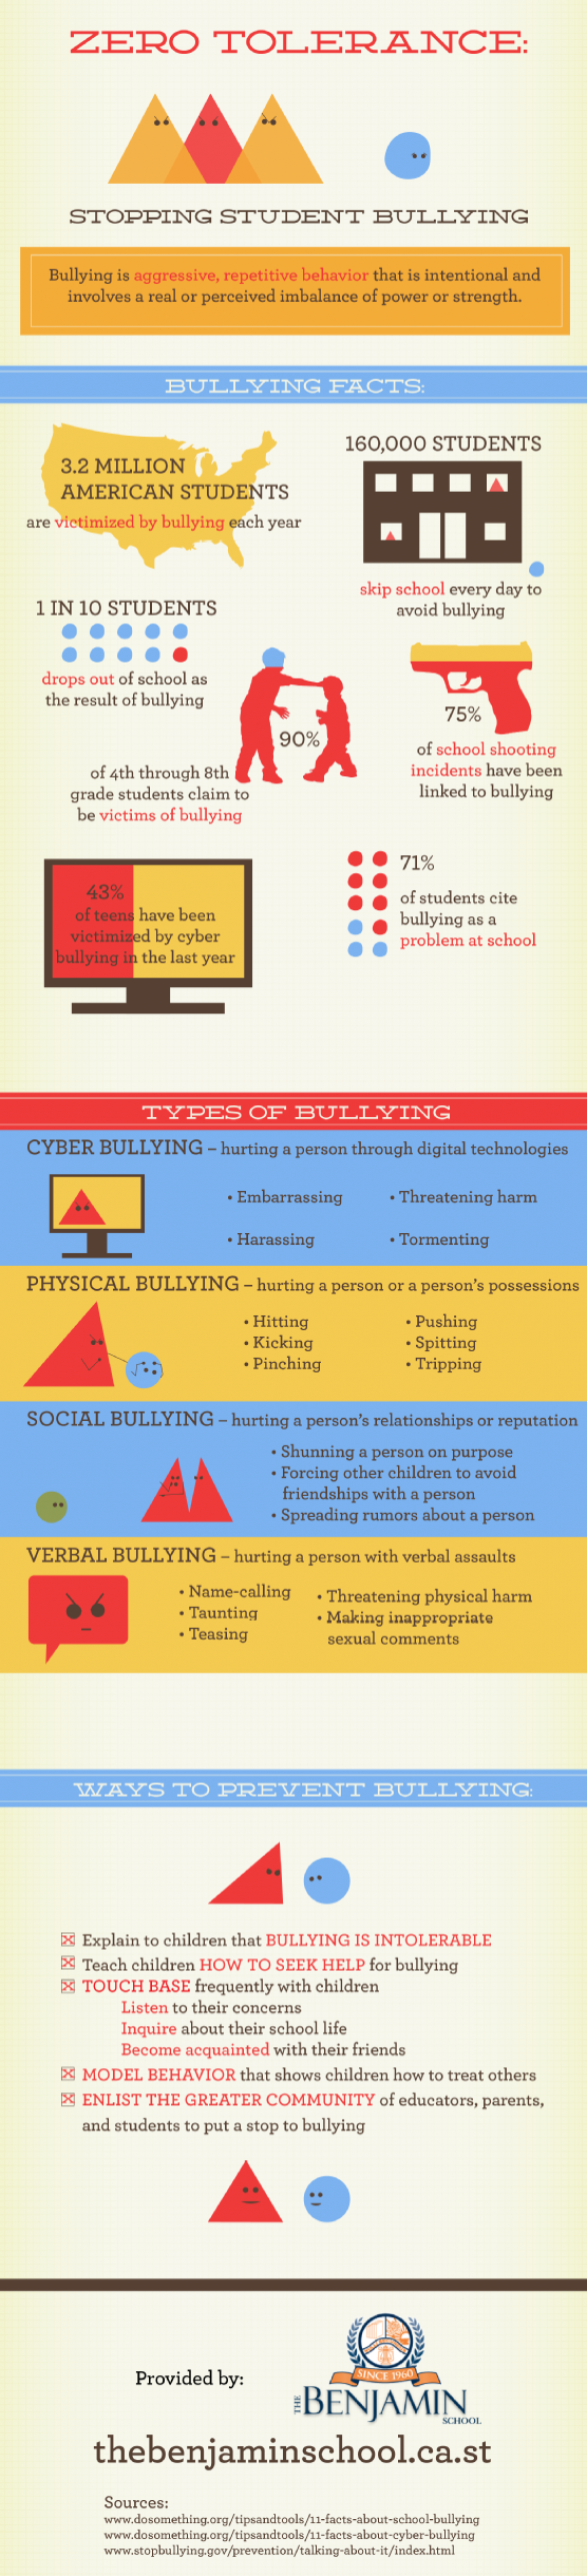 Zero Tolerance: Stopping Student Bullying